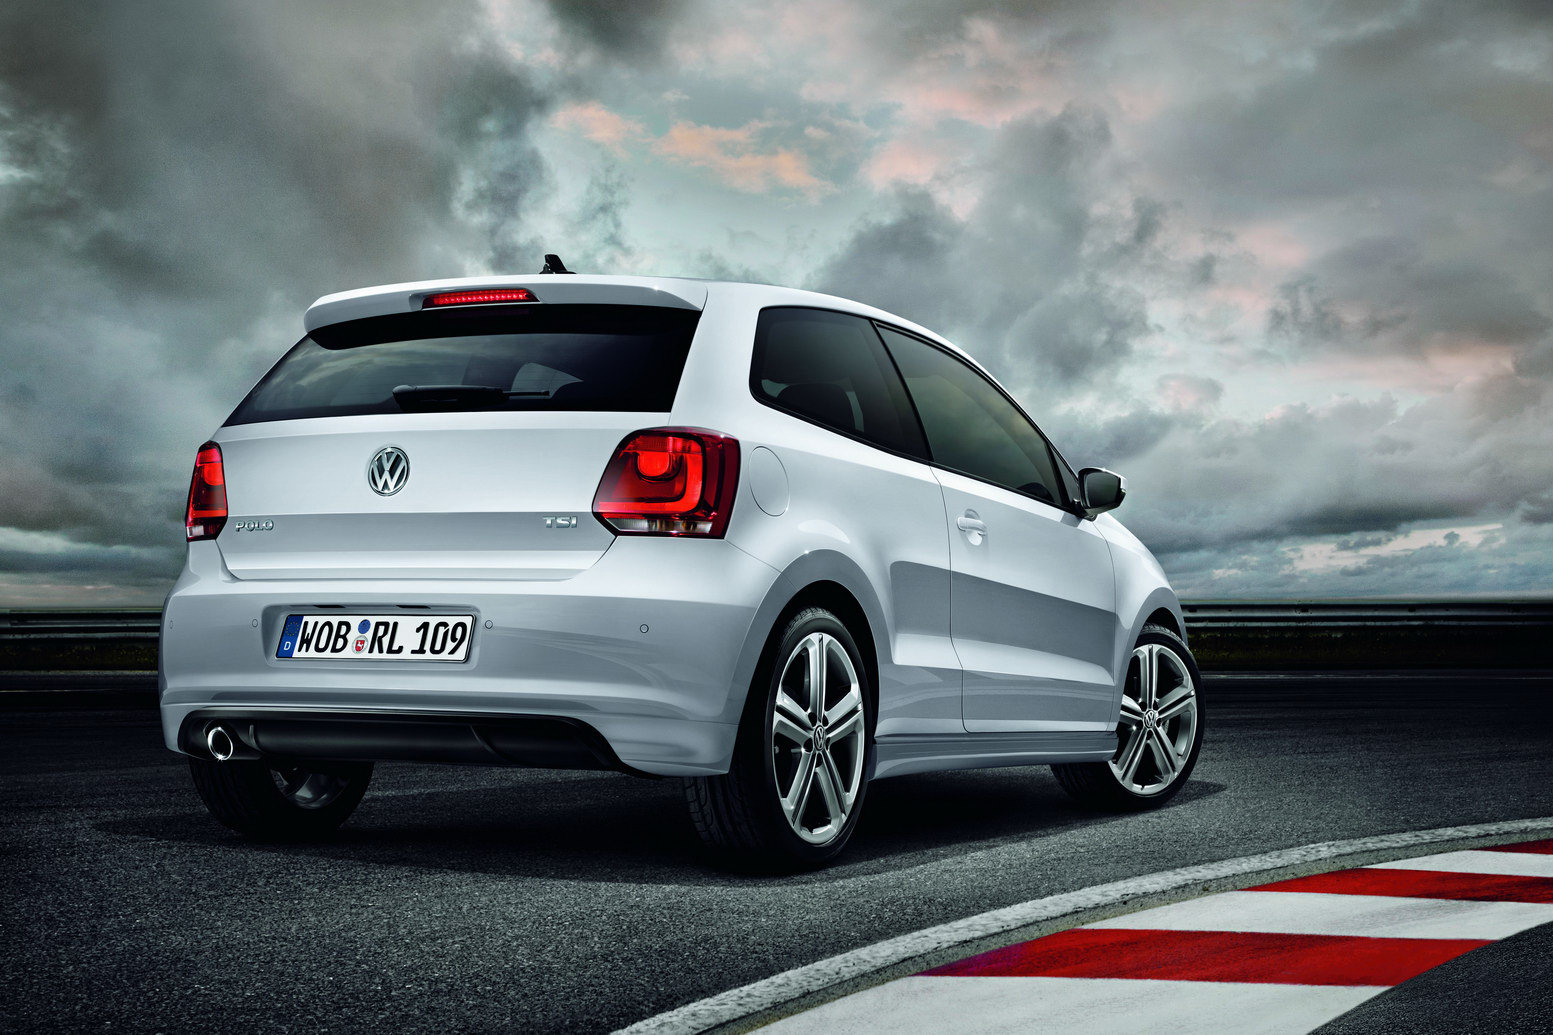 New Volkswagen Polo R Line and Passat Exclusive Edition 1 Loads of renovation by Volkswagen